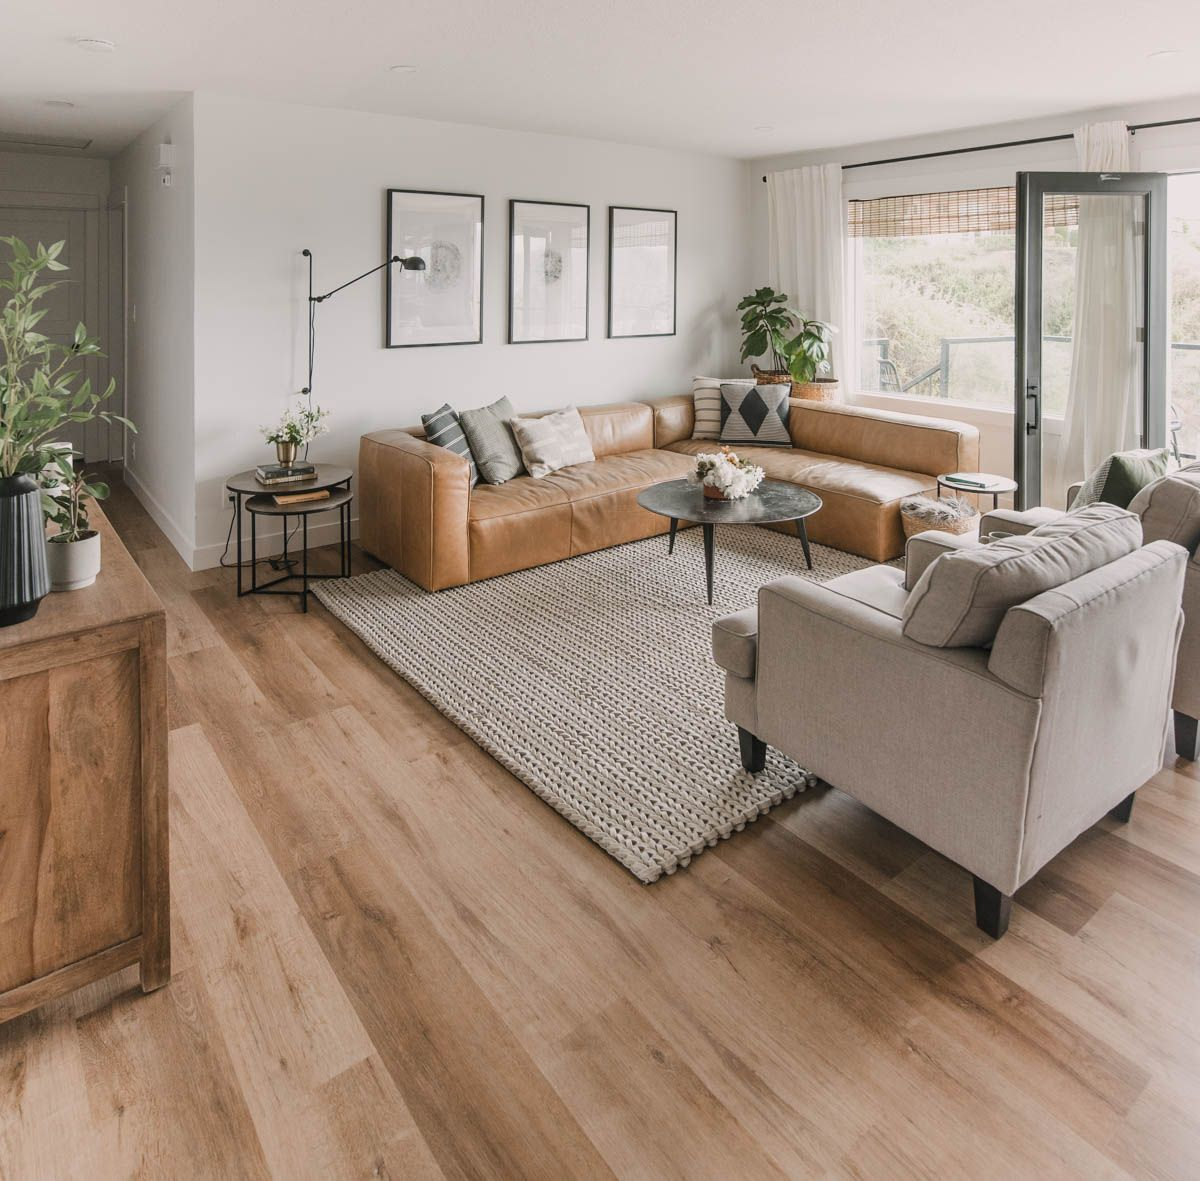 New Floors Summer Home Tour Lemon Thistle In 2020 Home Chic Home Decor Home Decor